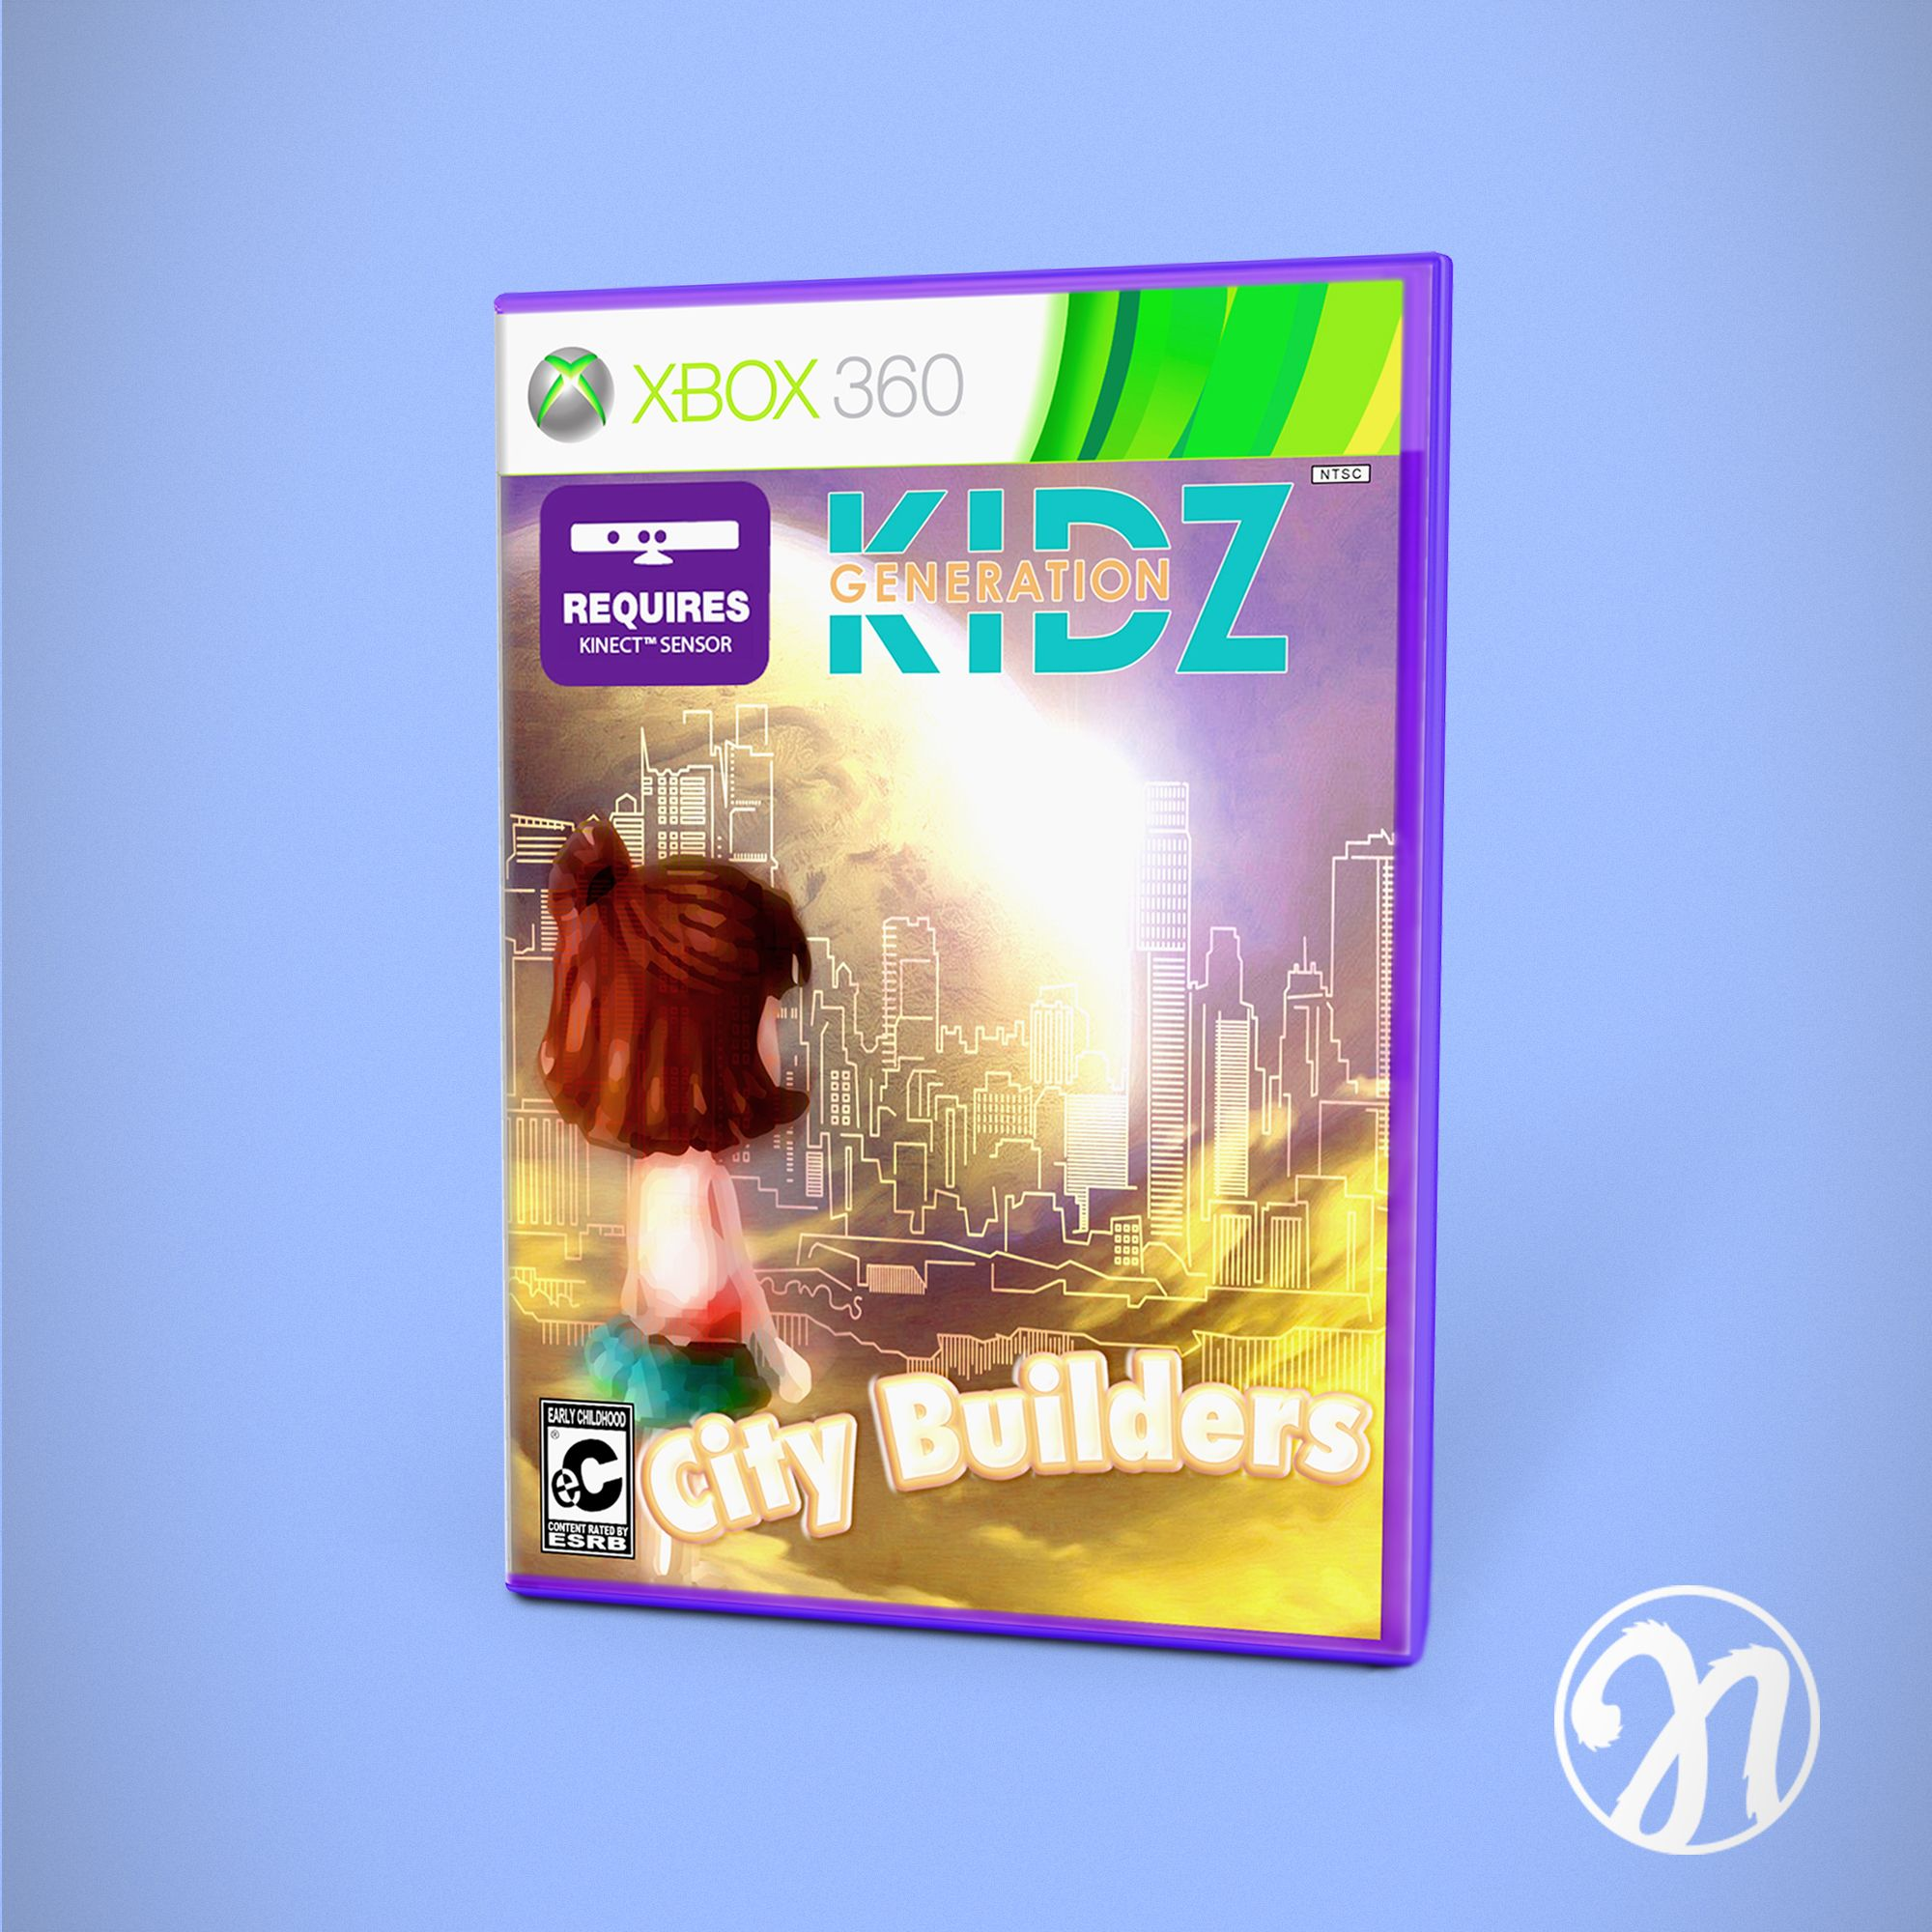 Educational Game made with Microsoft Kinect technology Design